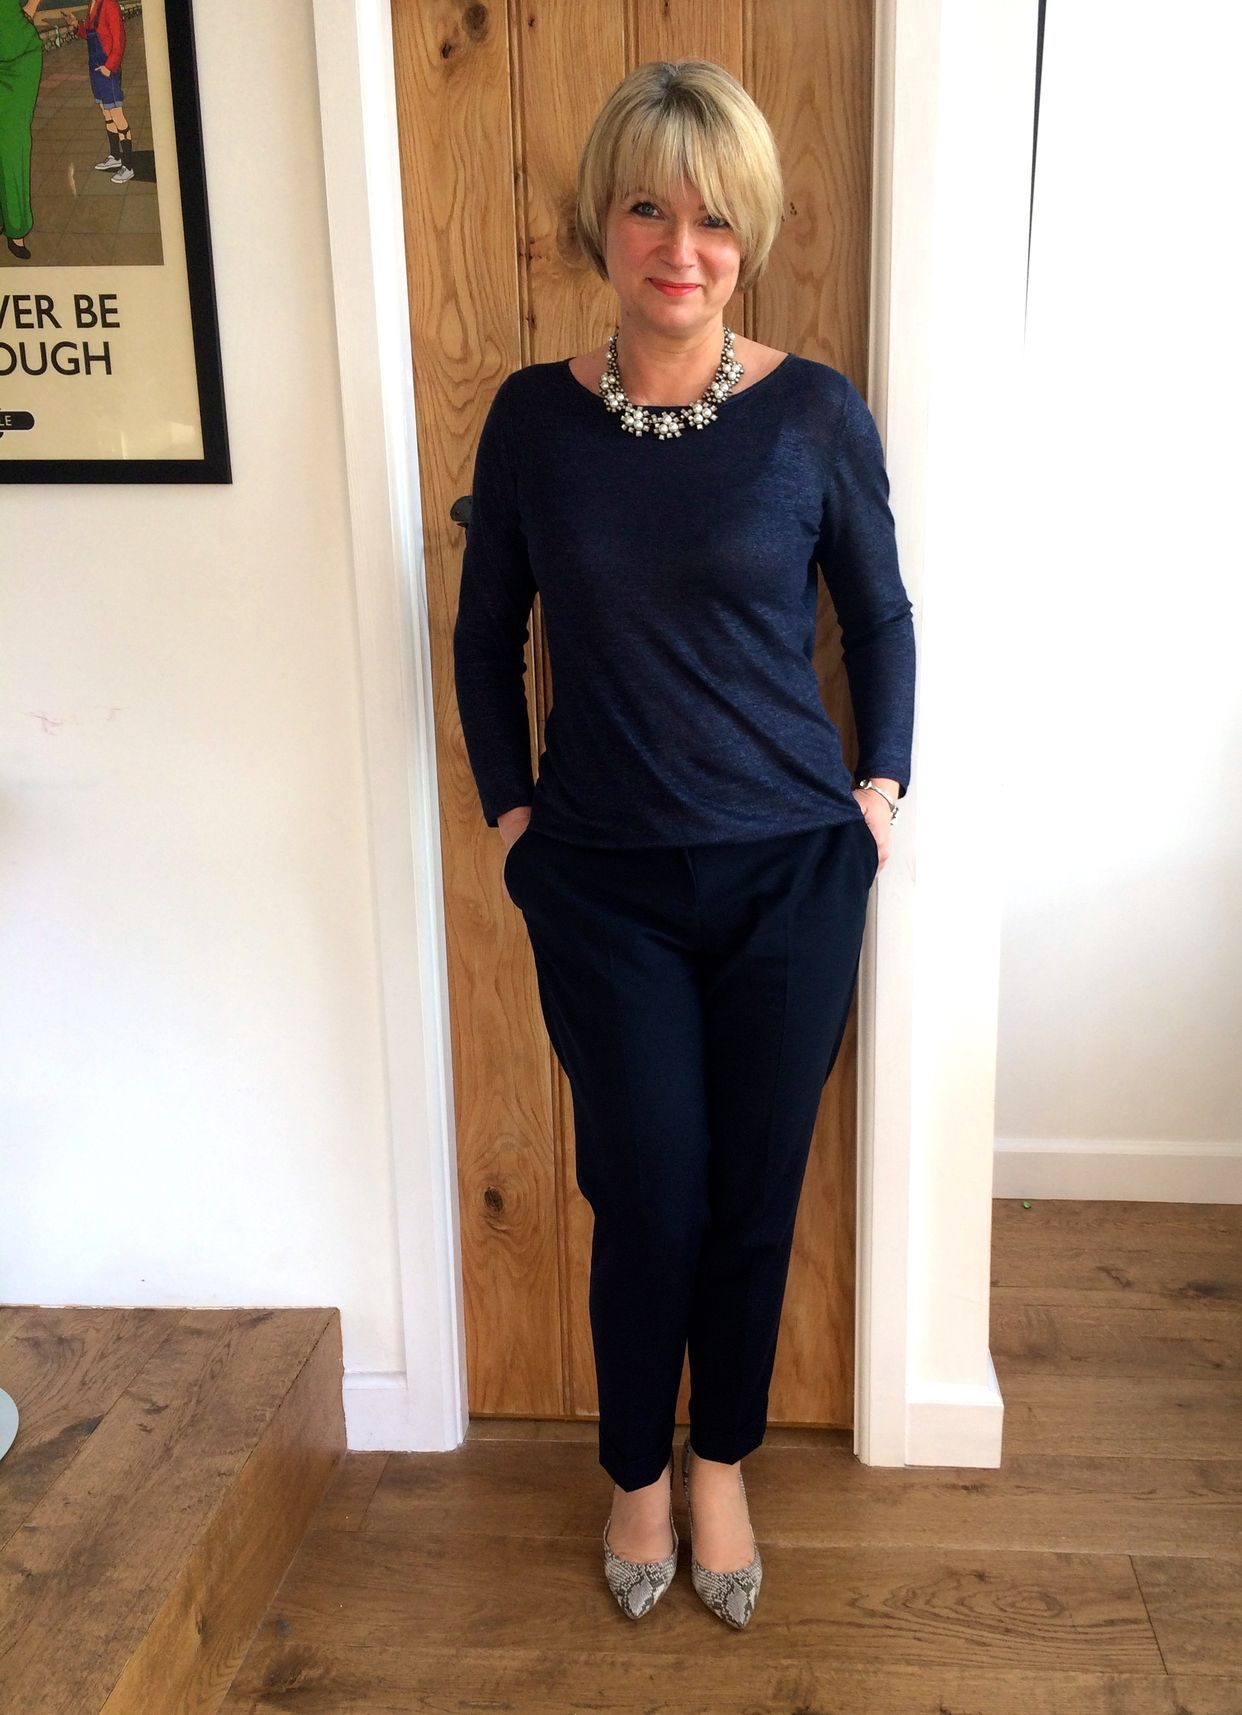 New Spring fashion for women over 40